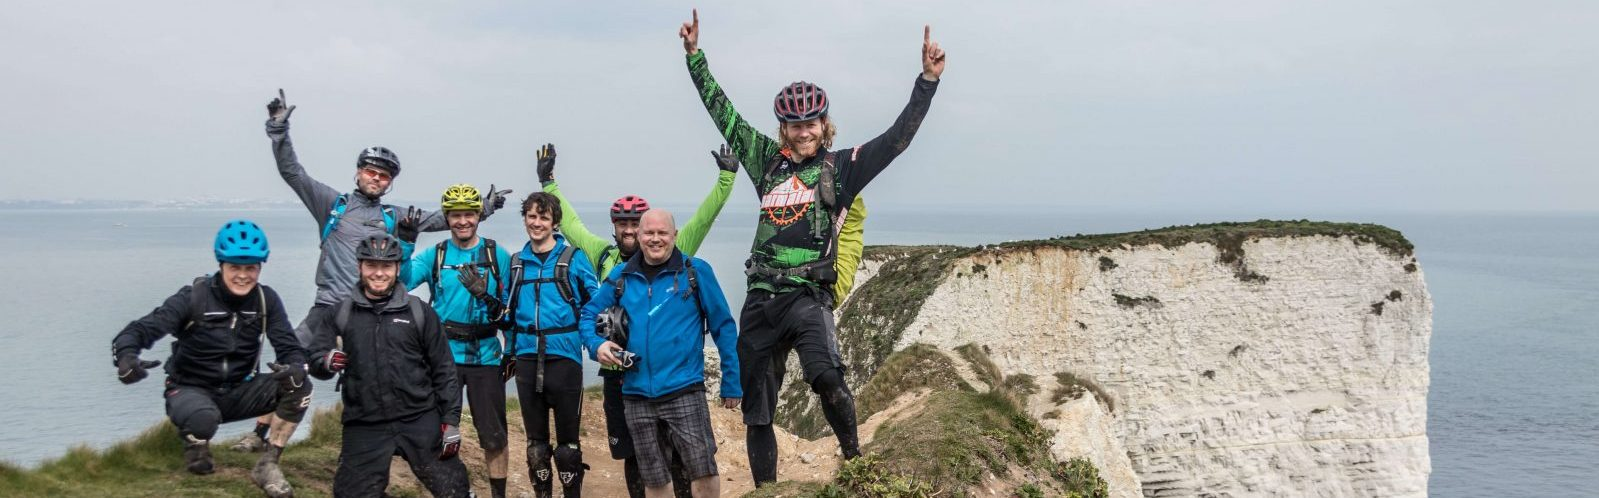 Isle of purbeck Old Harry Rocks Mountain Bike Rides